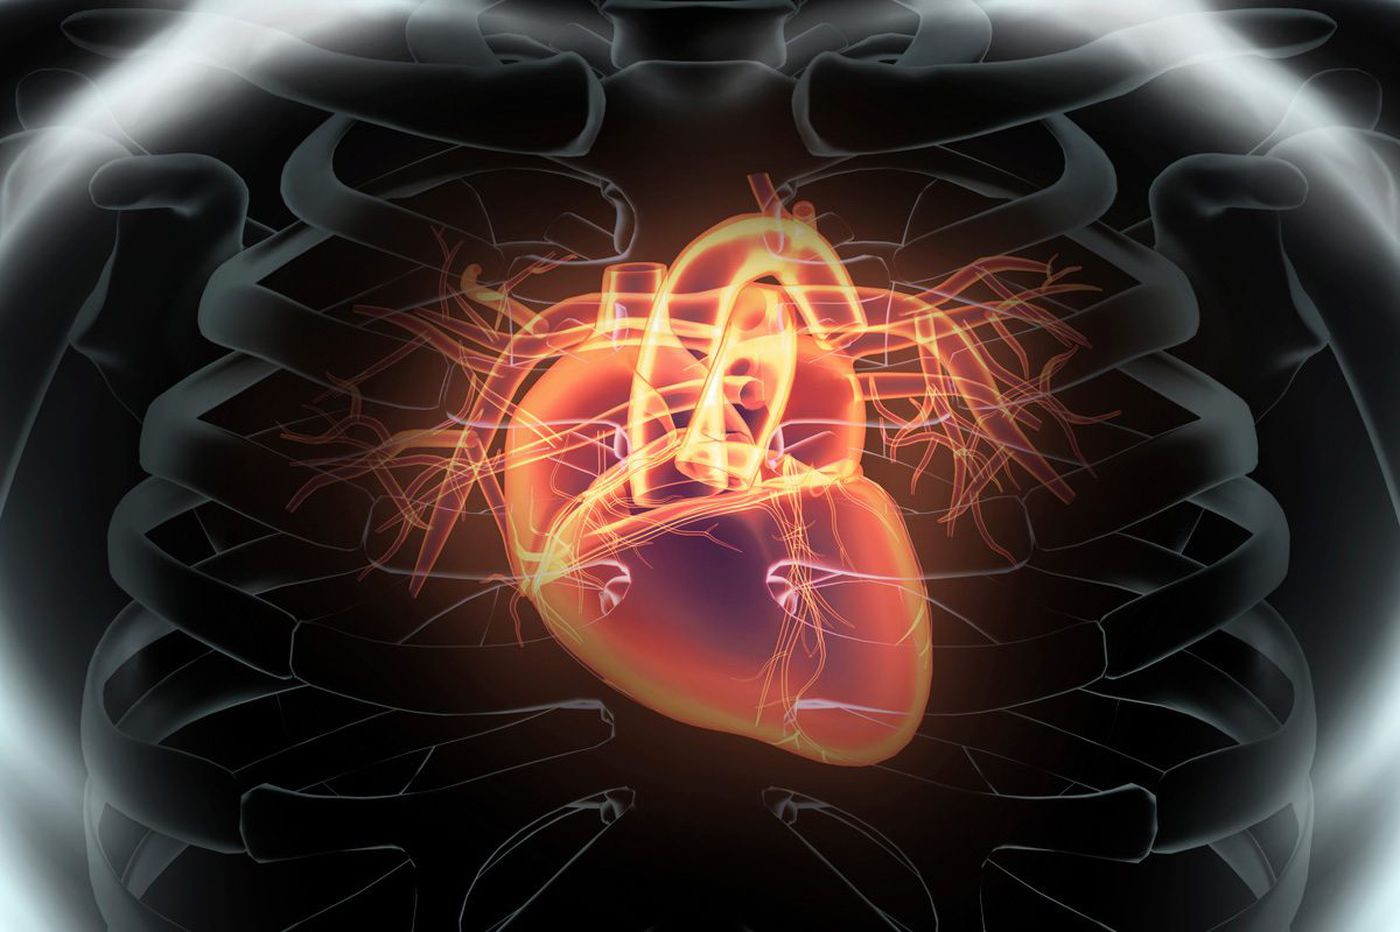 Q&A: What is cardiogenic shock, and why should I care?